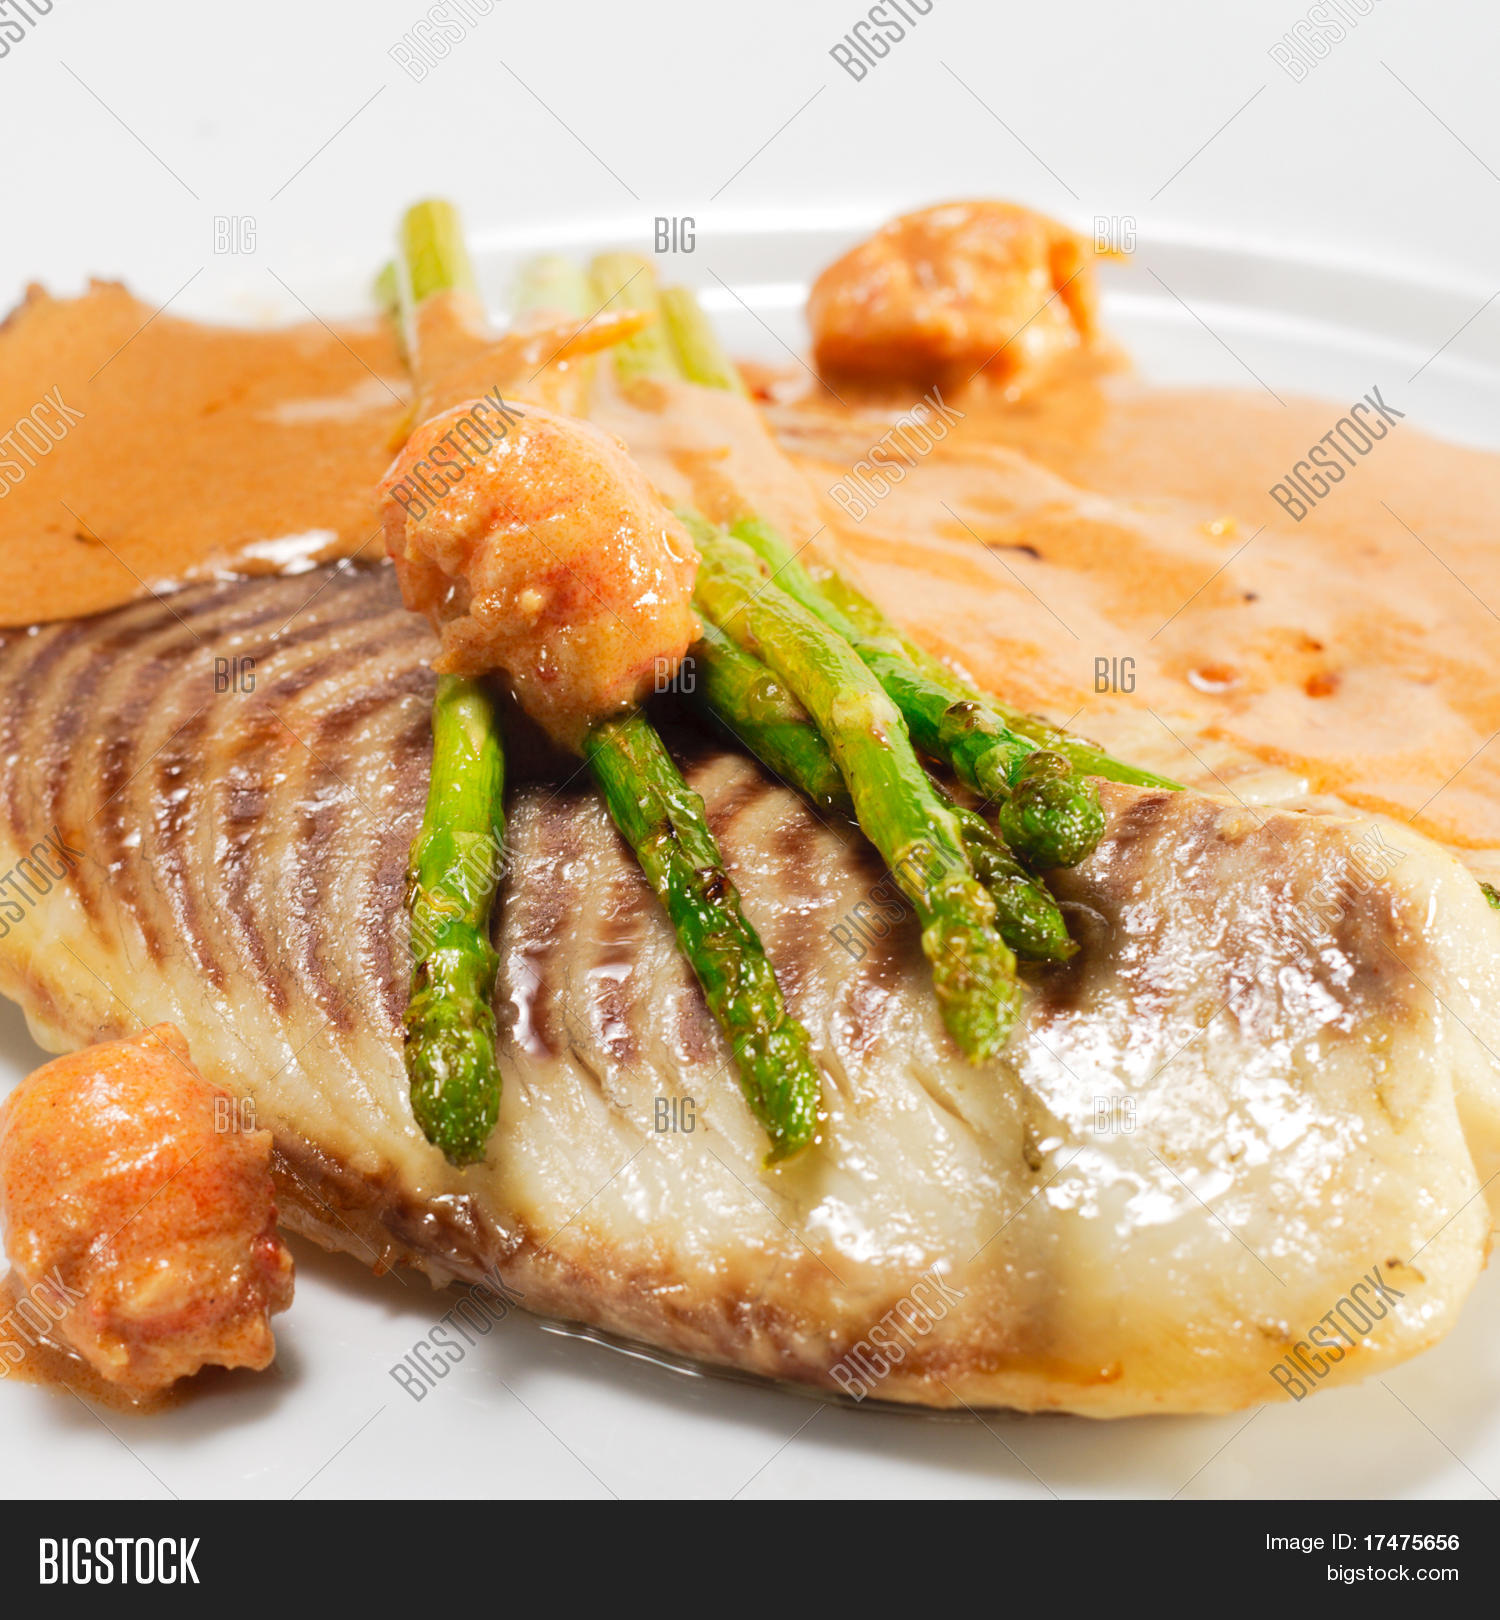 Hot Fish Dishes - Image & Photo (Free Trial) | Bigstock